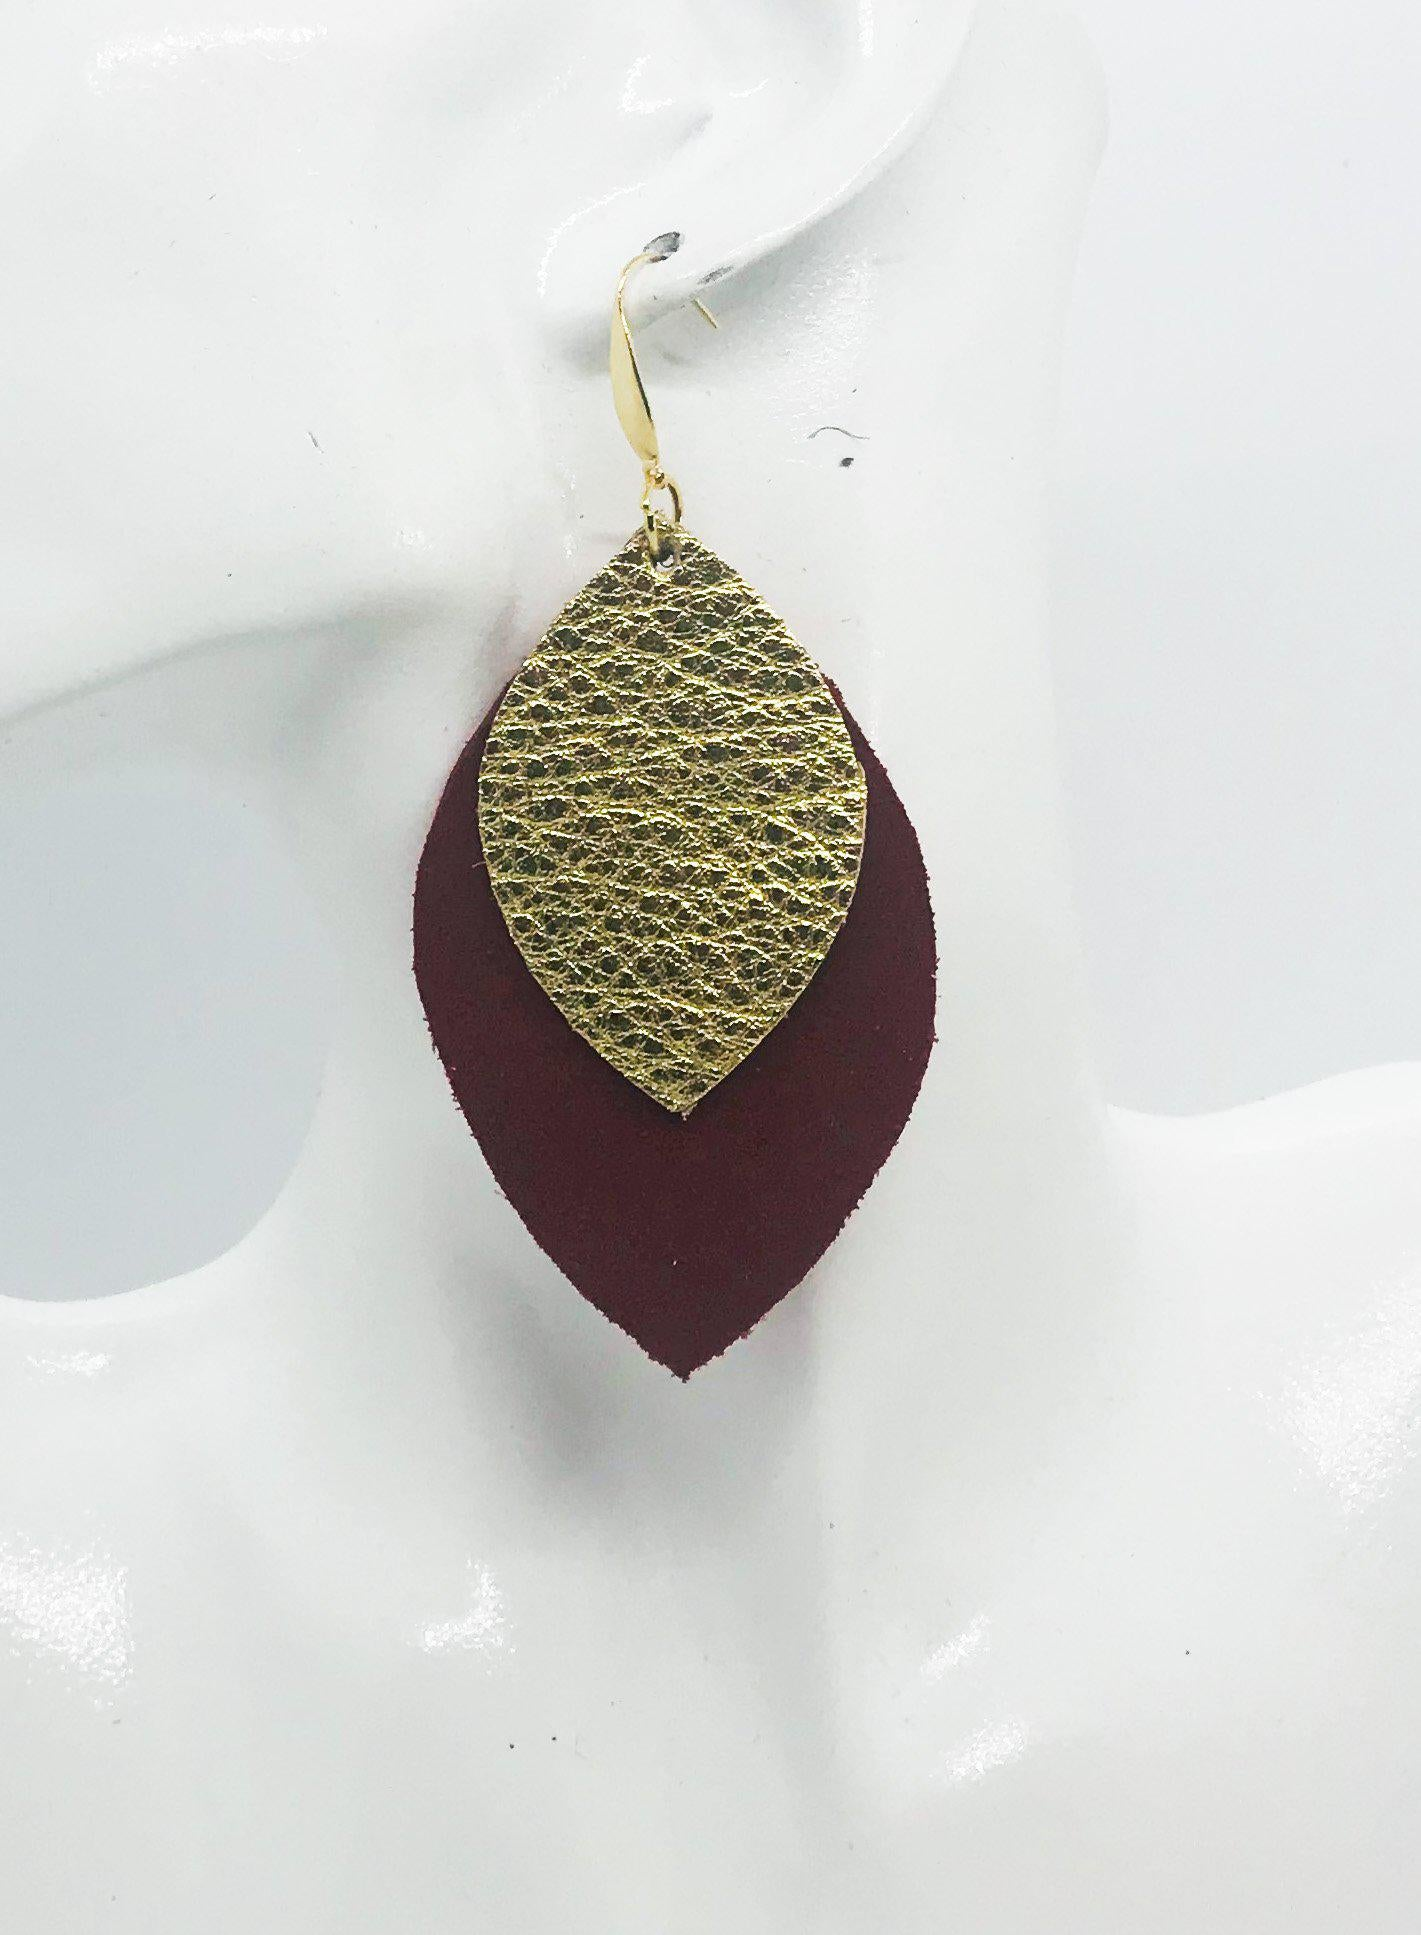 Pebbled Gold Leather Over Red Suede Leather Earrings - E19-1268